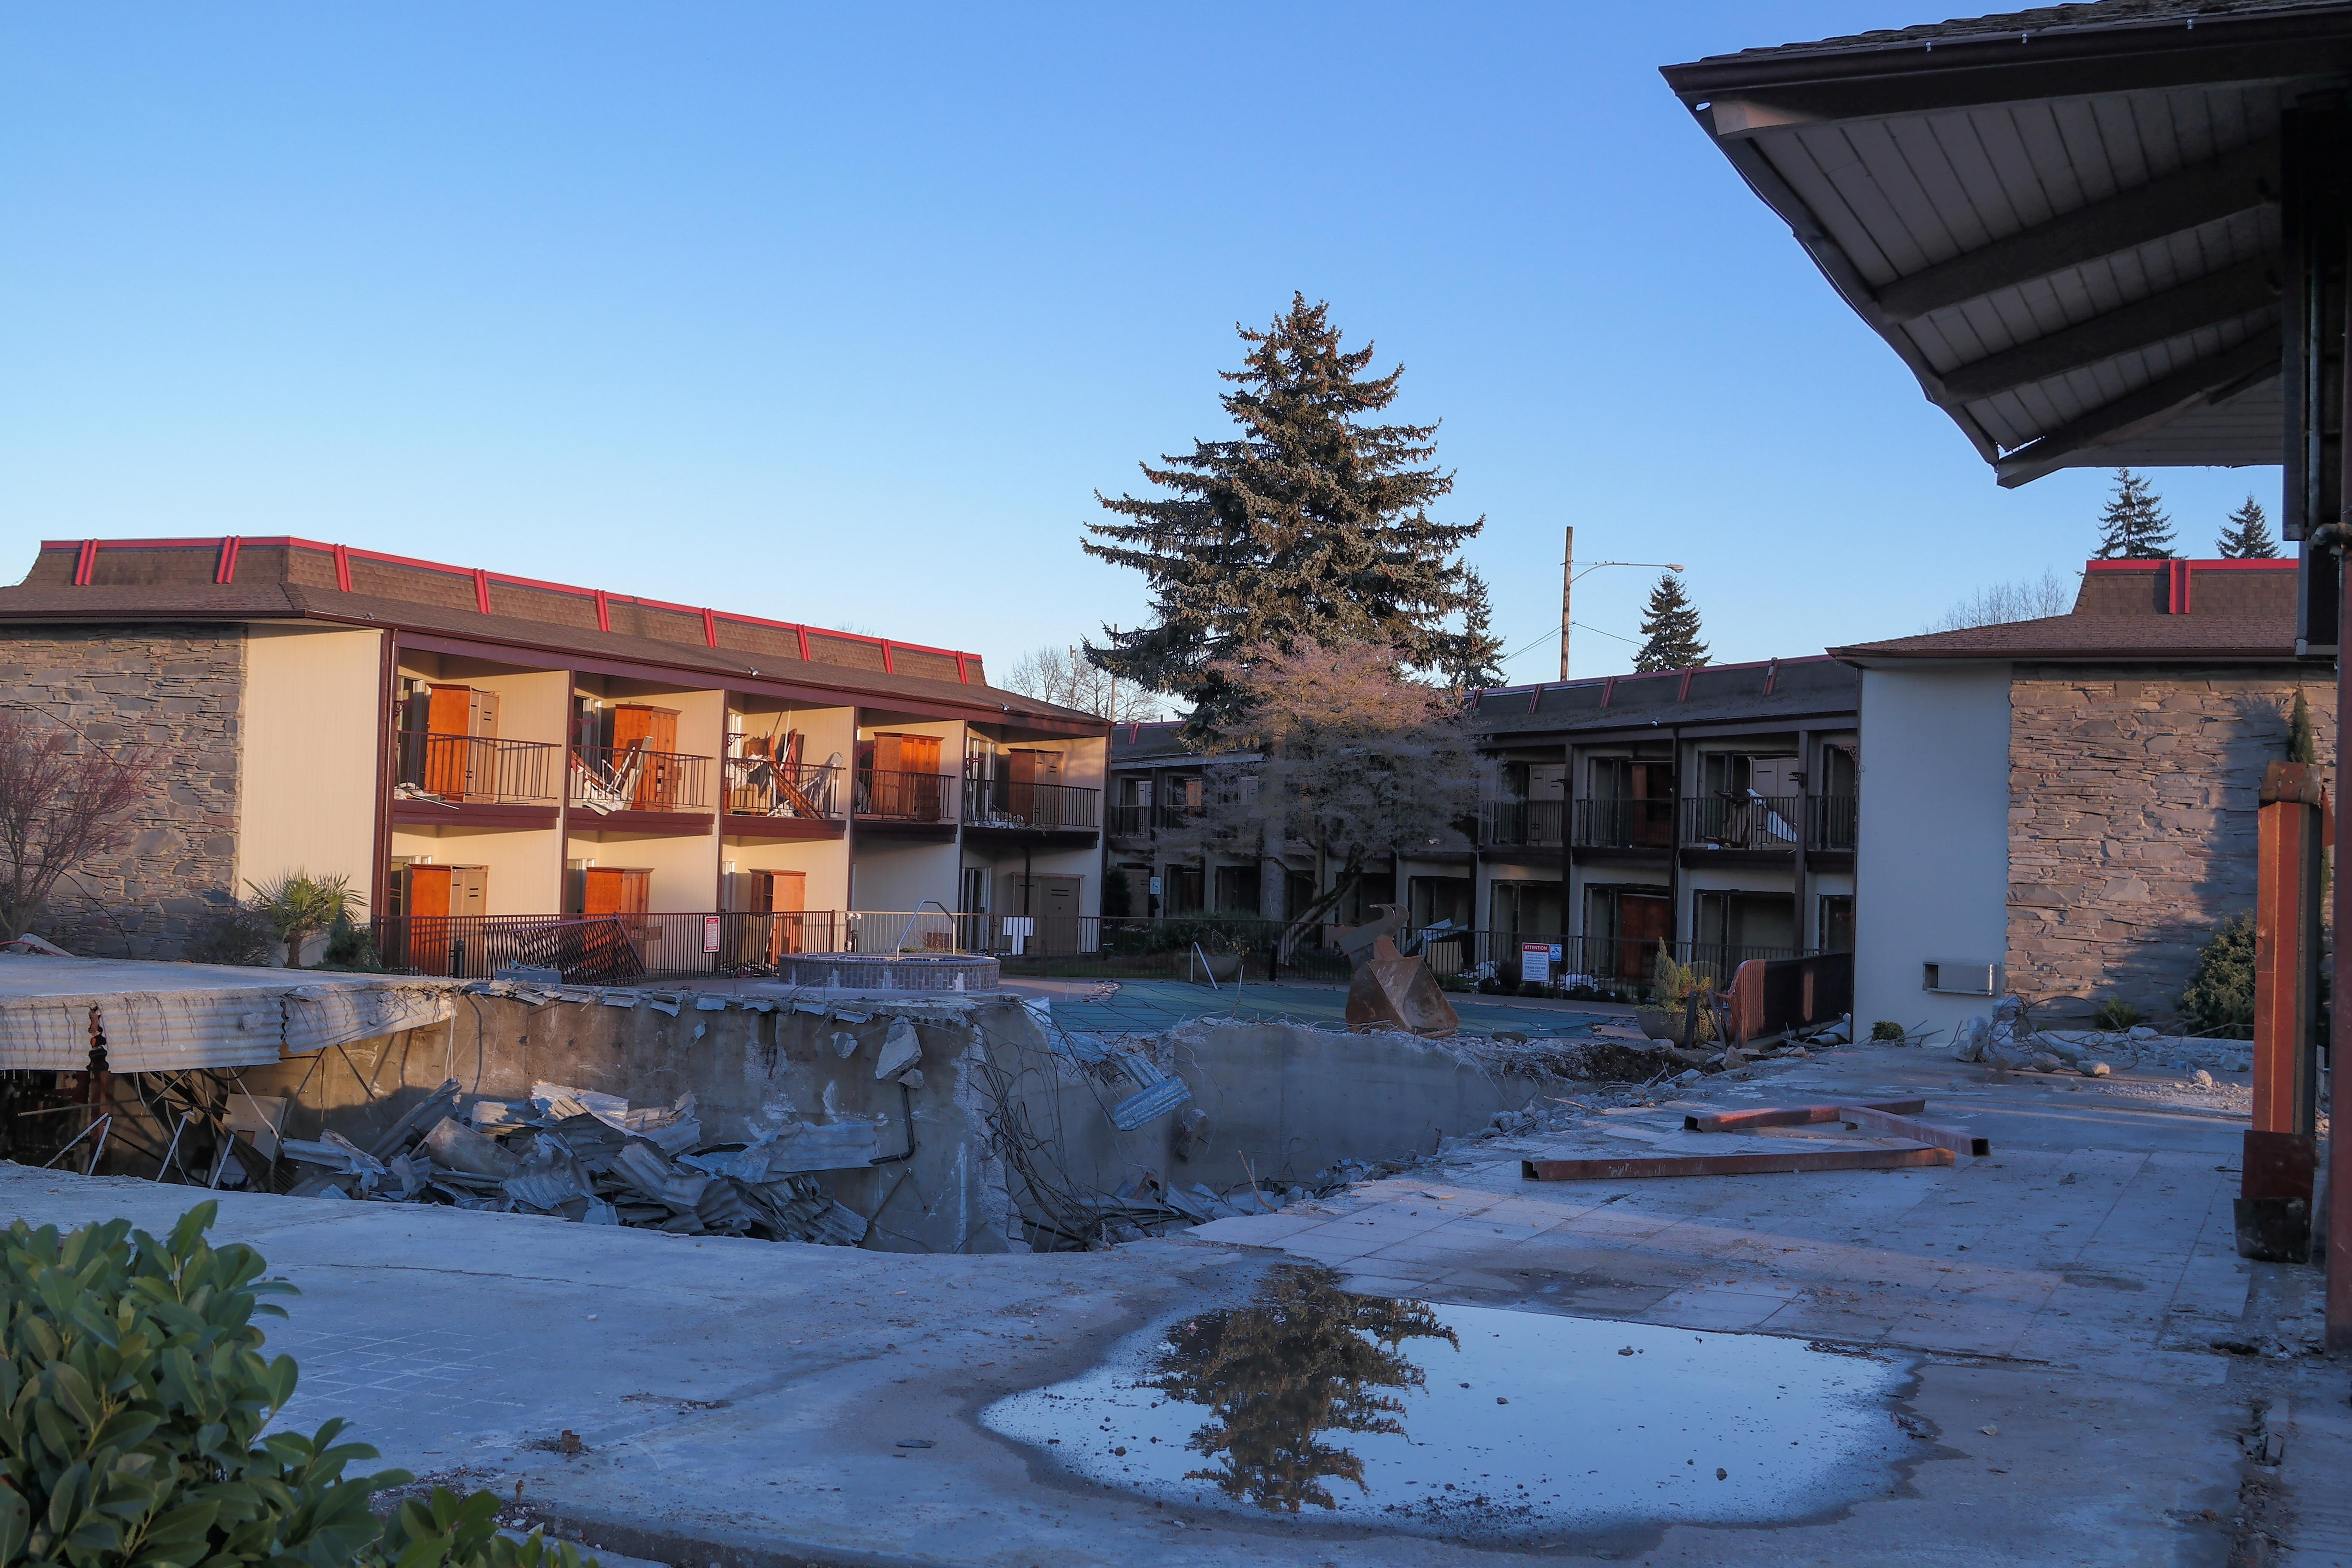 Red Lion Hotel Spokane Wa At The Park